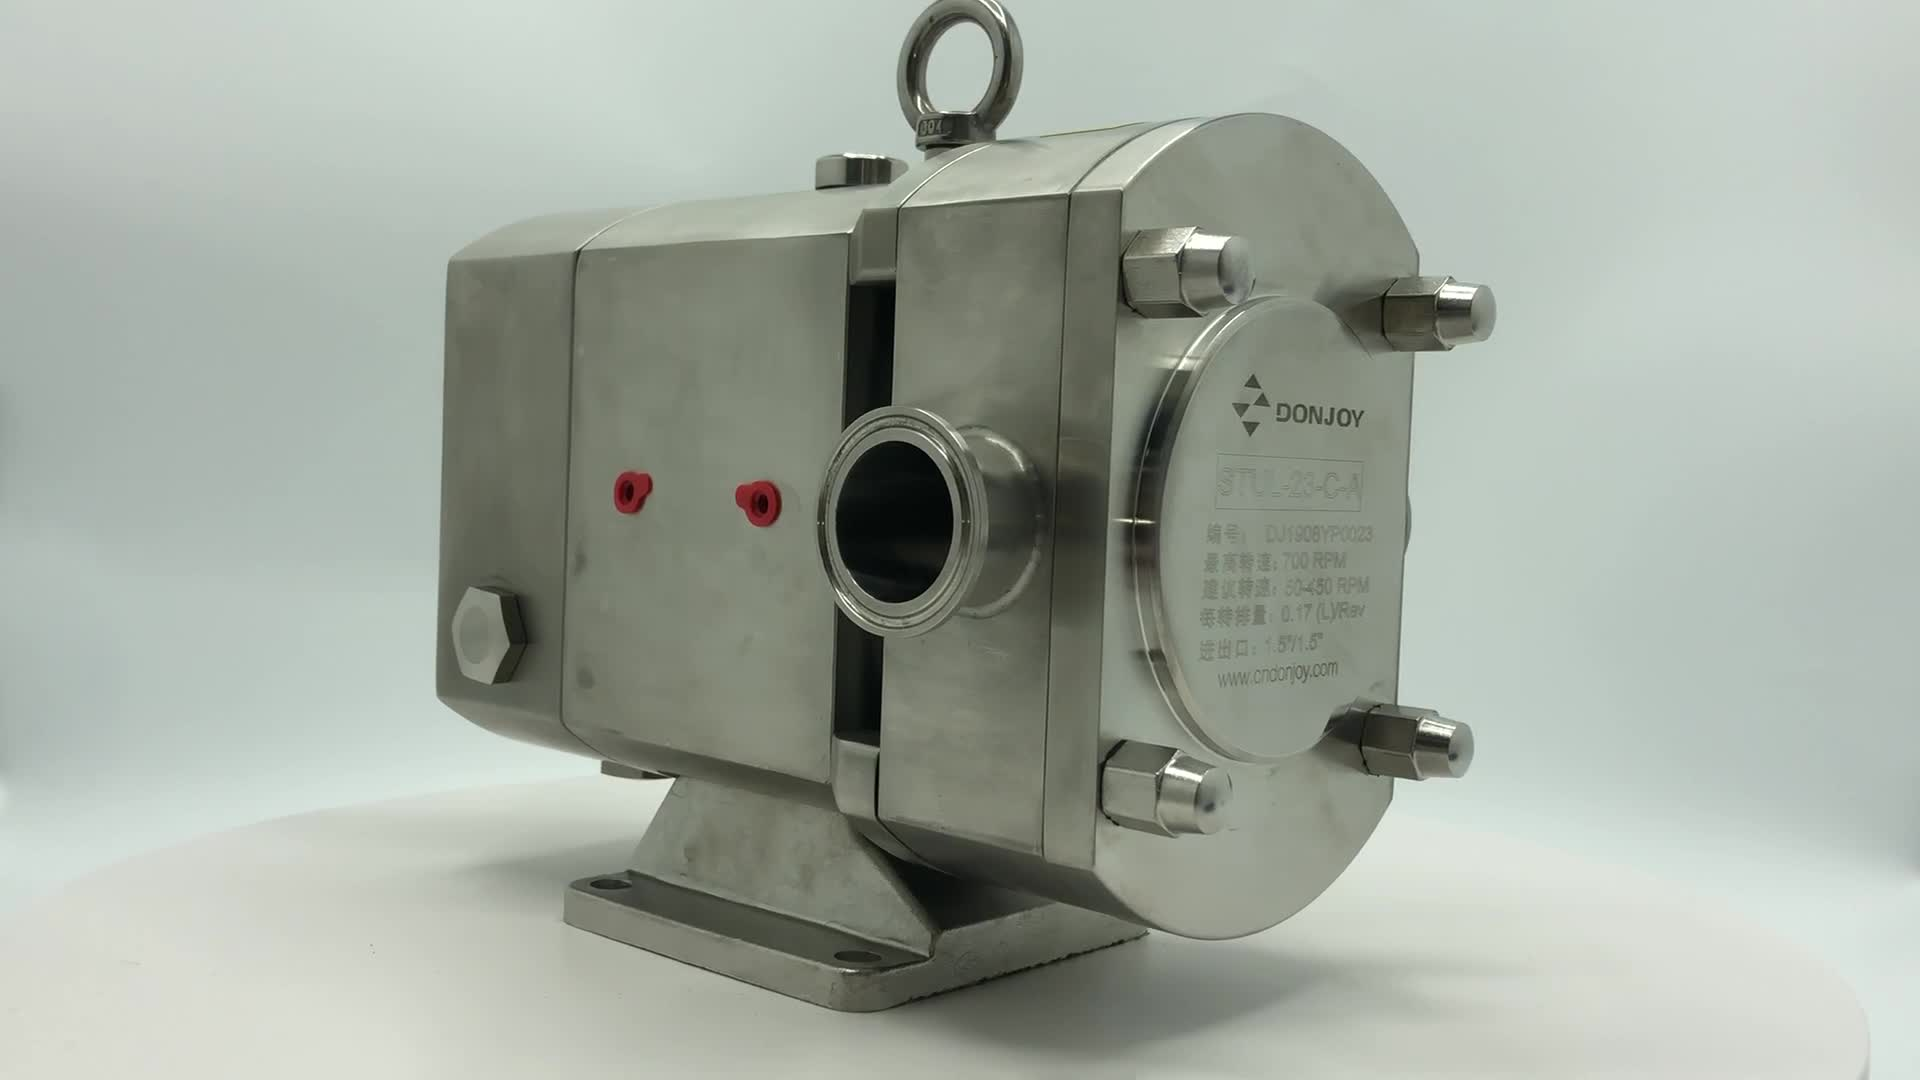 DONJOY SS316L stainless steel sanitary cam pump with heat jacket for candy gum and chocolate